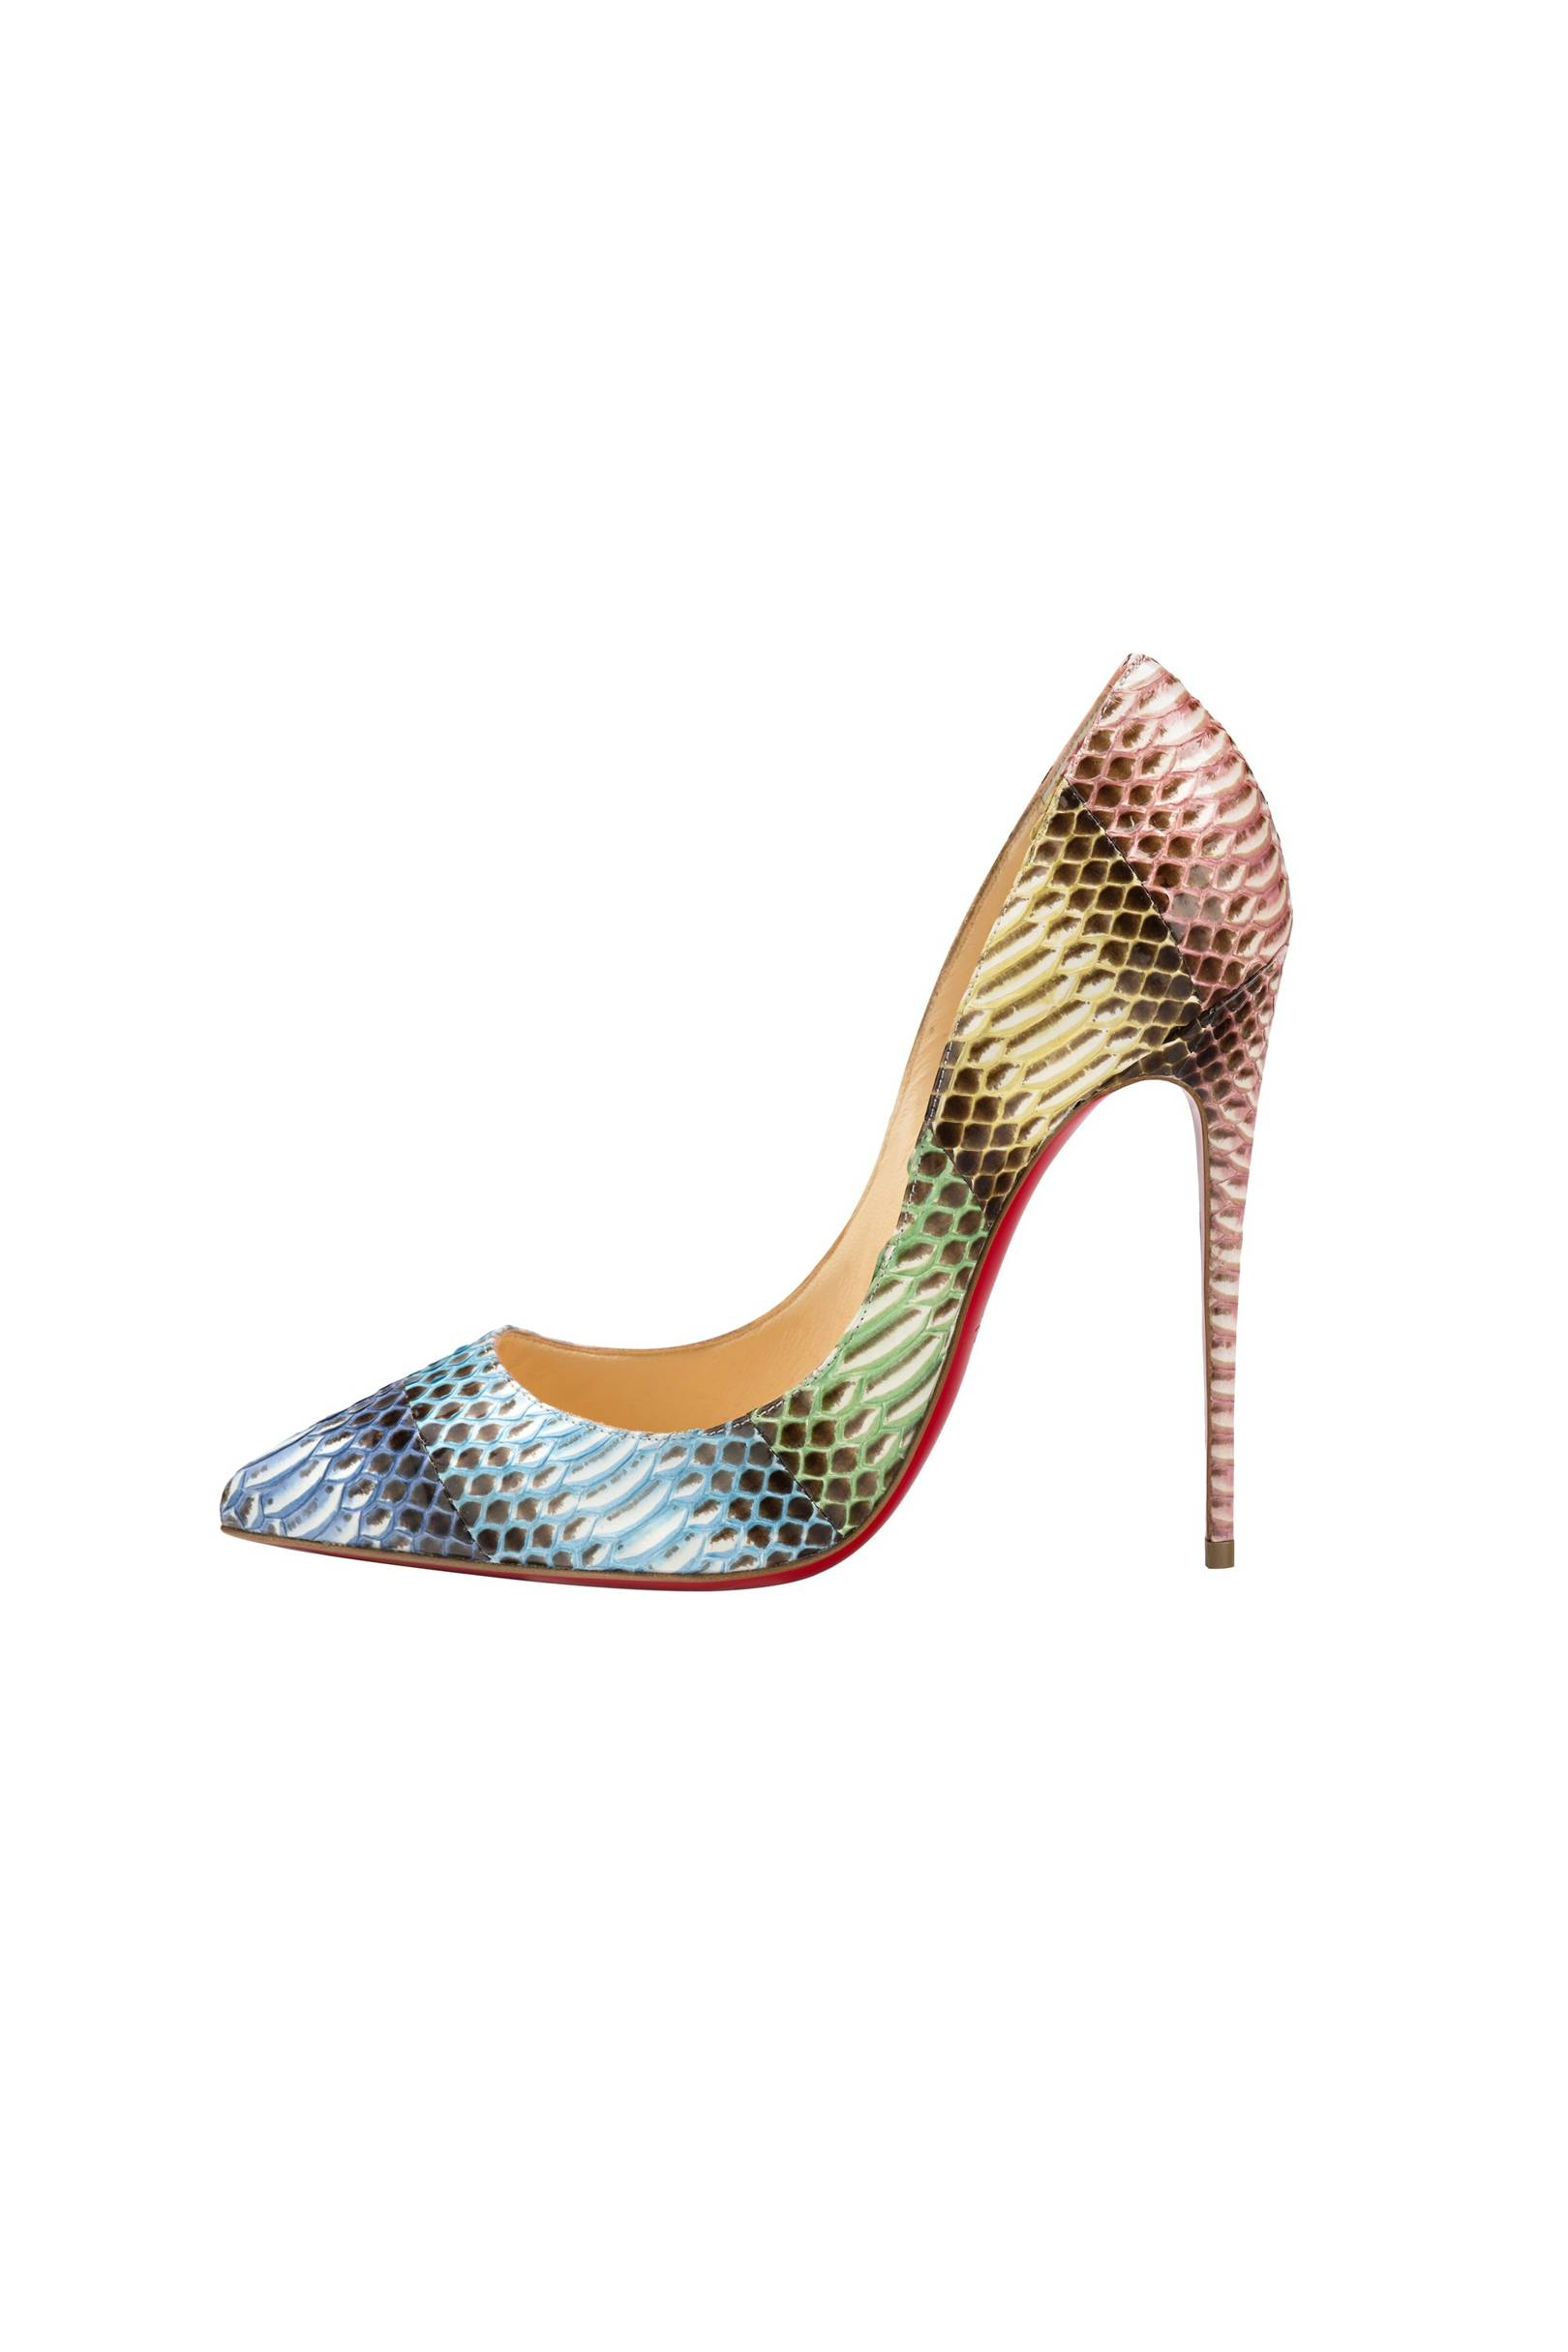 9cca6913d228 Christian Louboutin Red Sole Trademark Back In Court